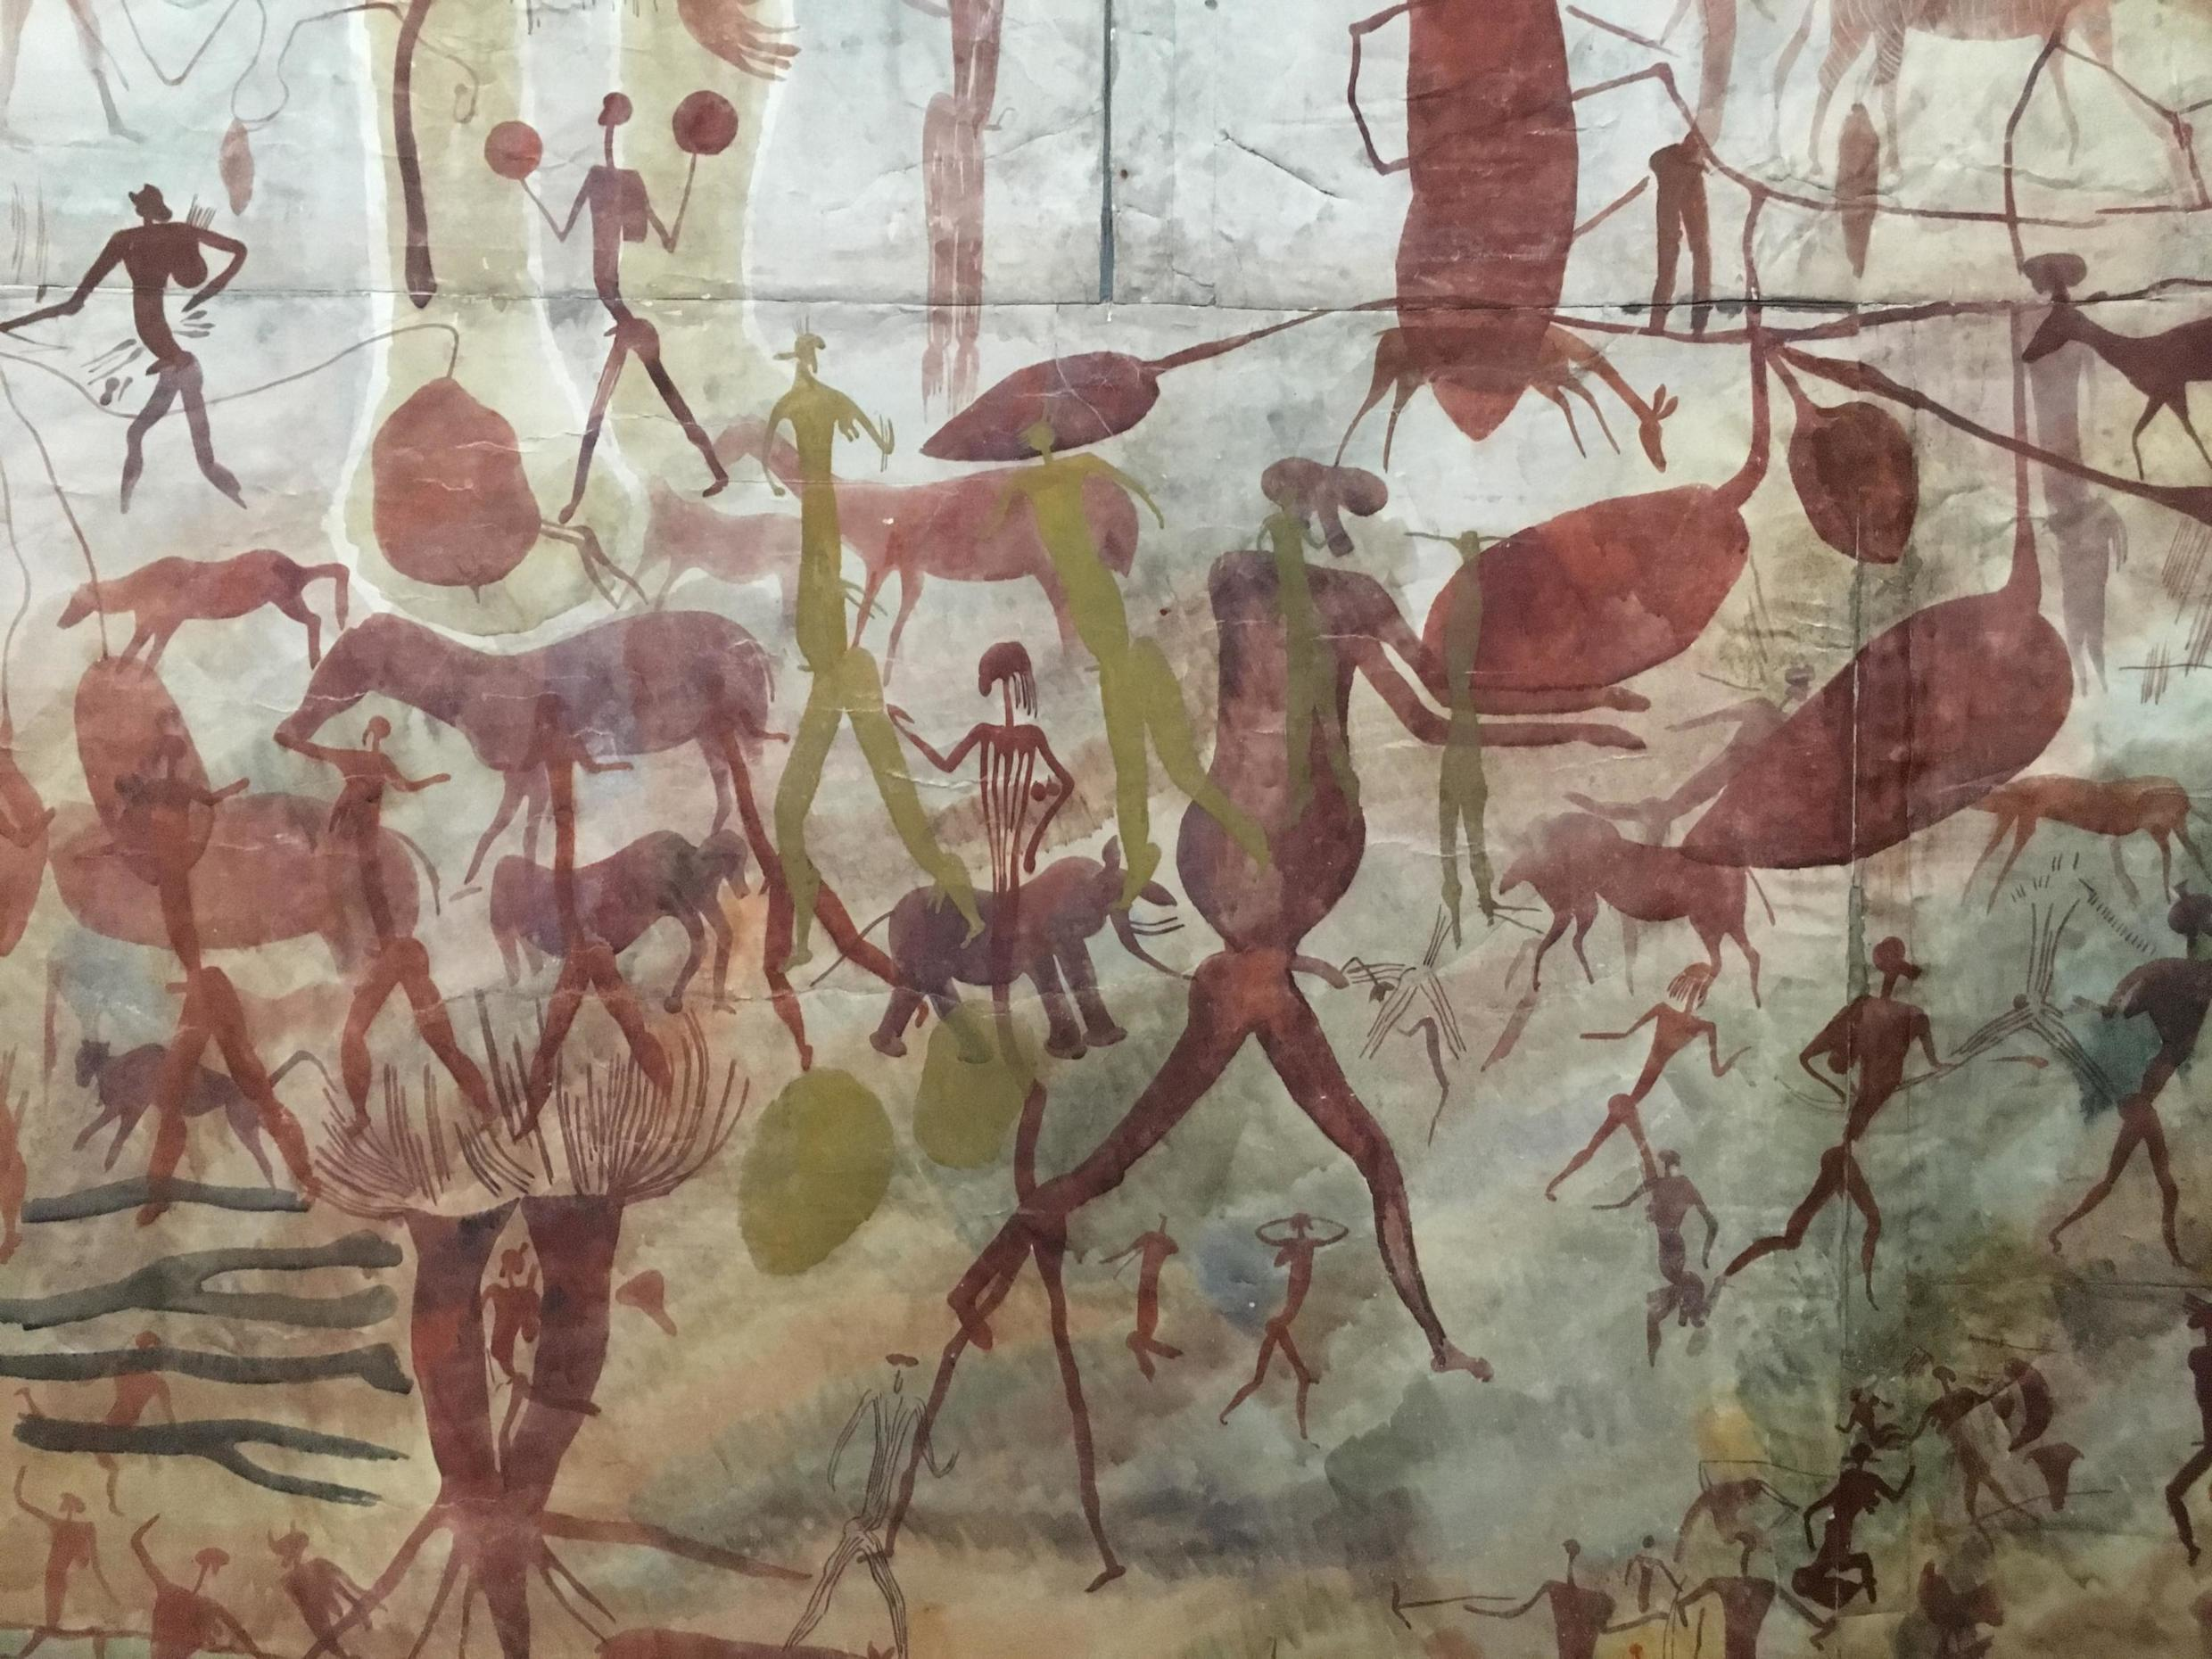 The exhibit at the Pompidou Centre in Paris explores how the discovery of prehistoric art influenced the development of modern thinking and culture.